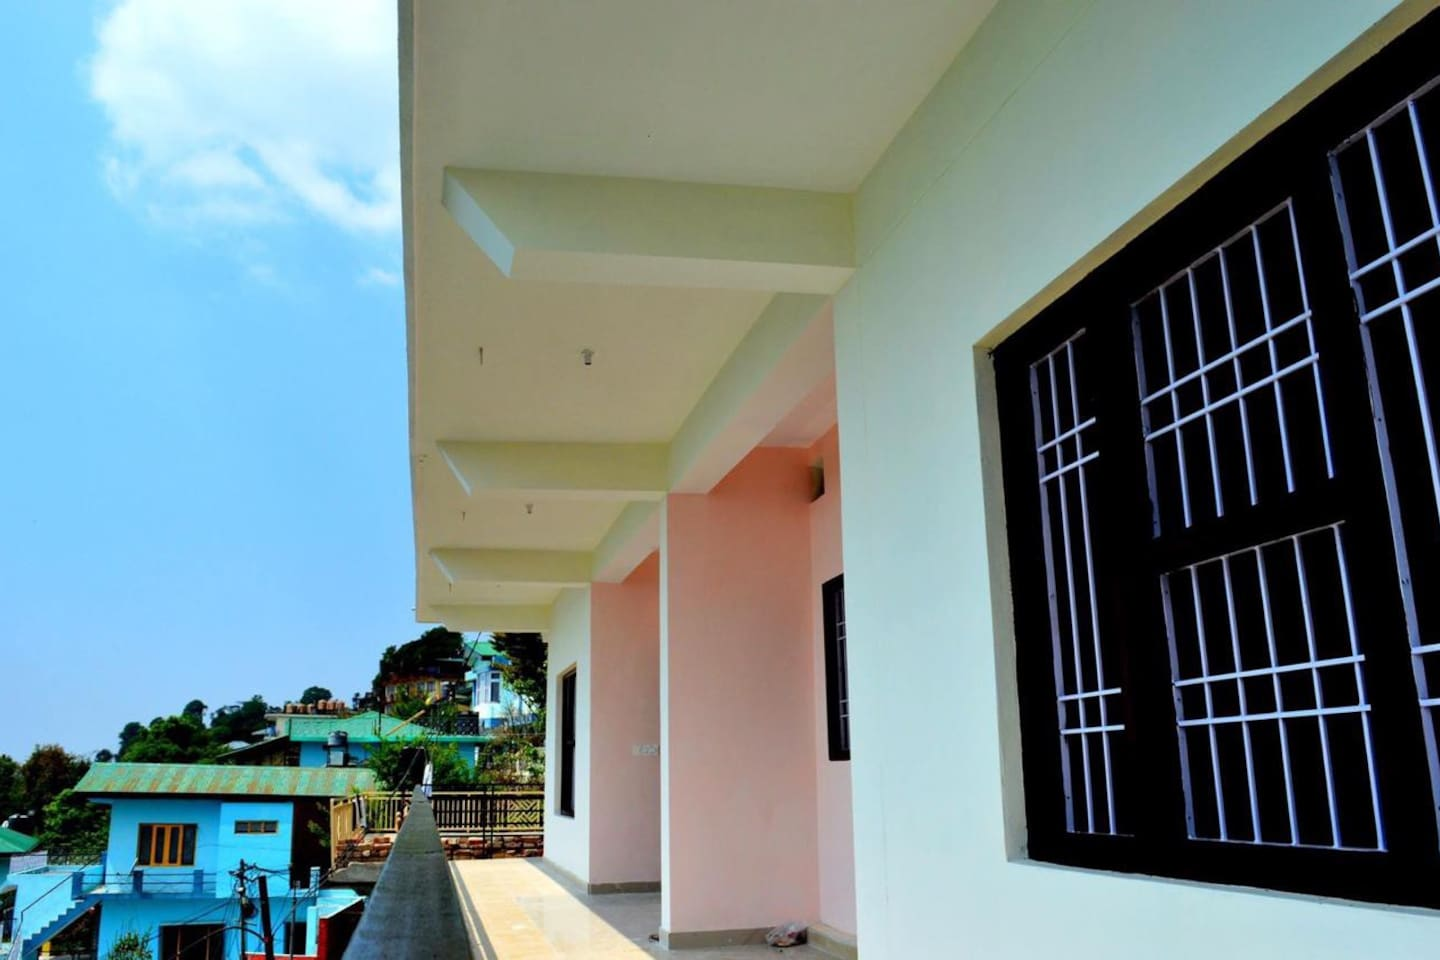 The Natural Body Heal has great space and balcony over looking the city/town. The place also has stunning view of Dhaludhar mountain range  from the balcony and roof top. This entire place/flat has full sun light and meximum view full day.